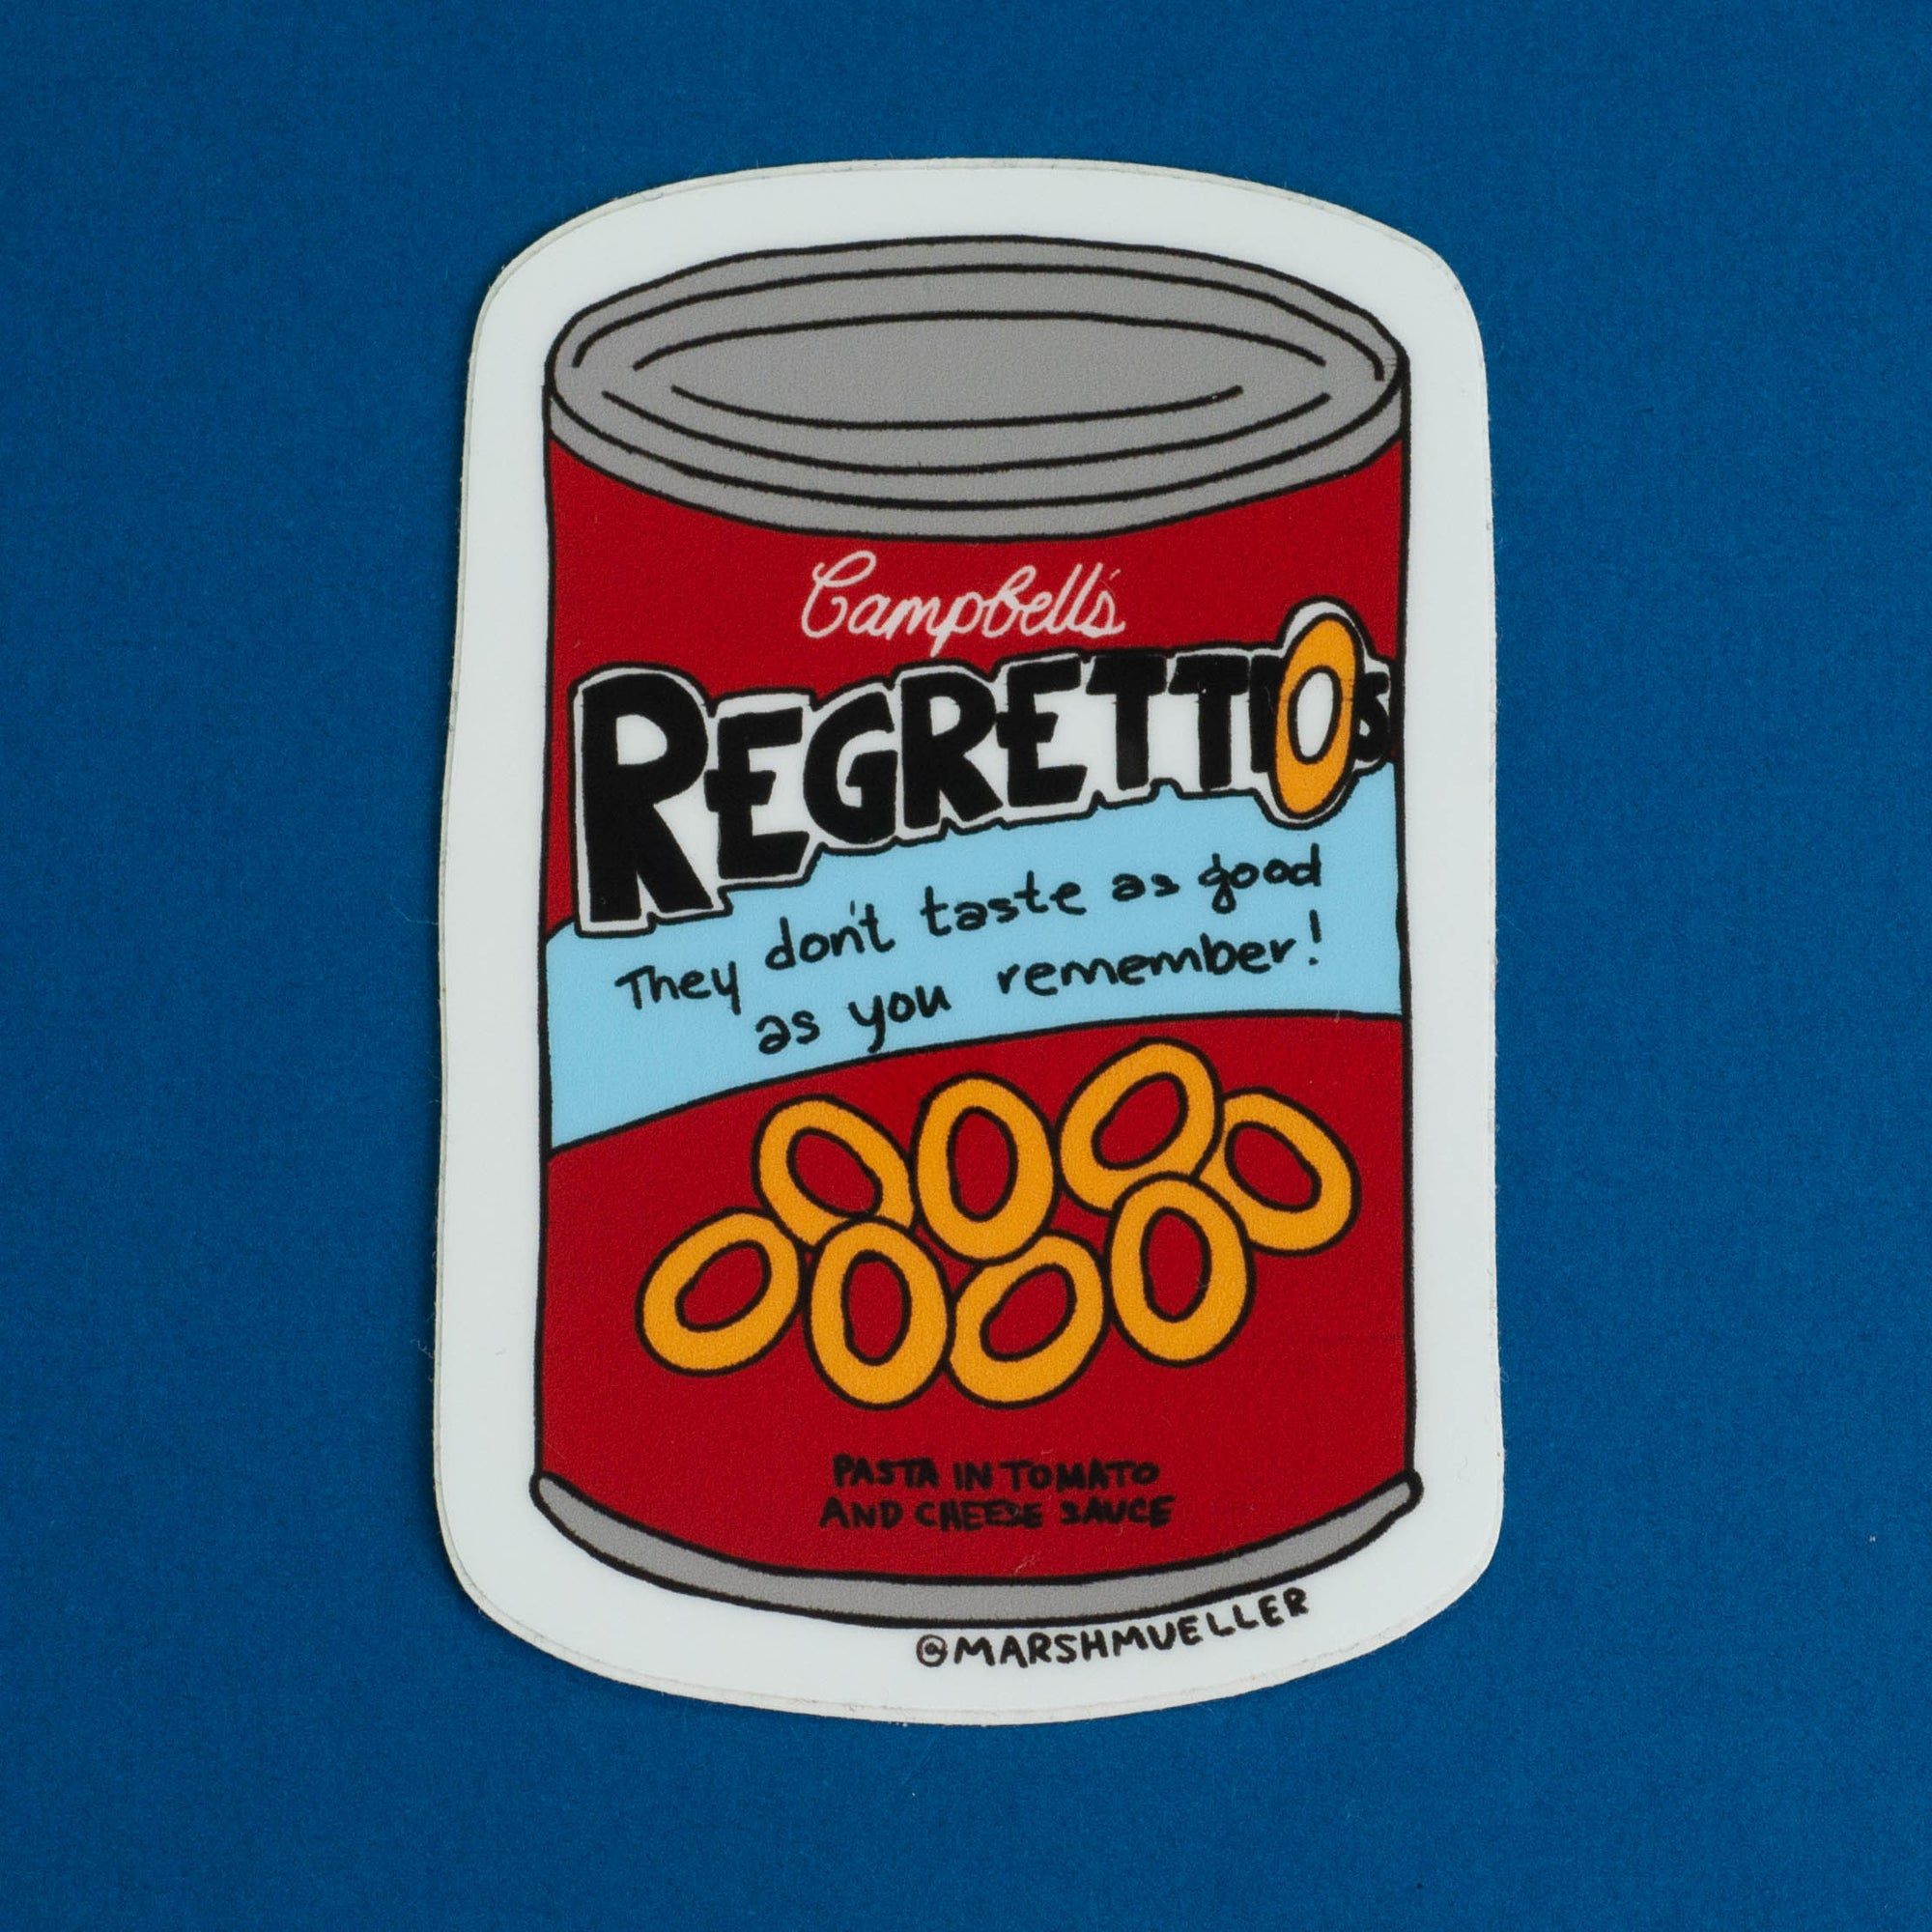 Regretti-os Sticker